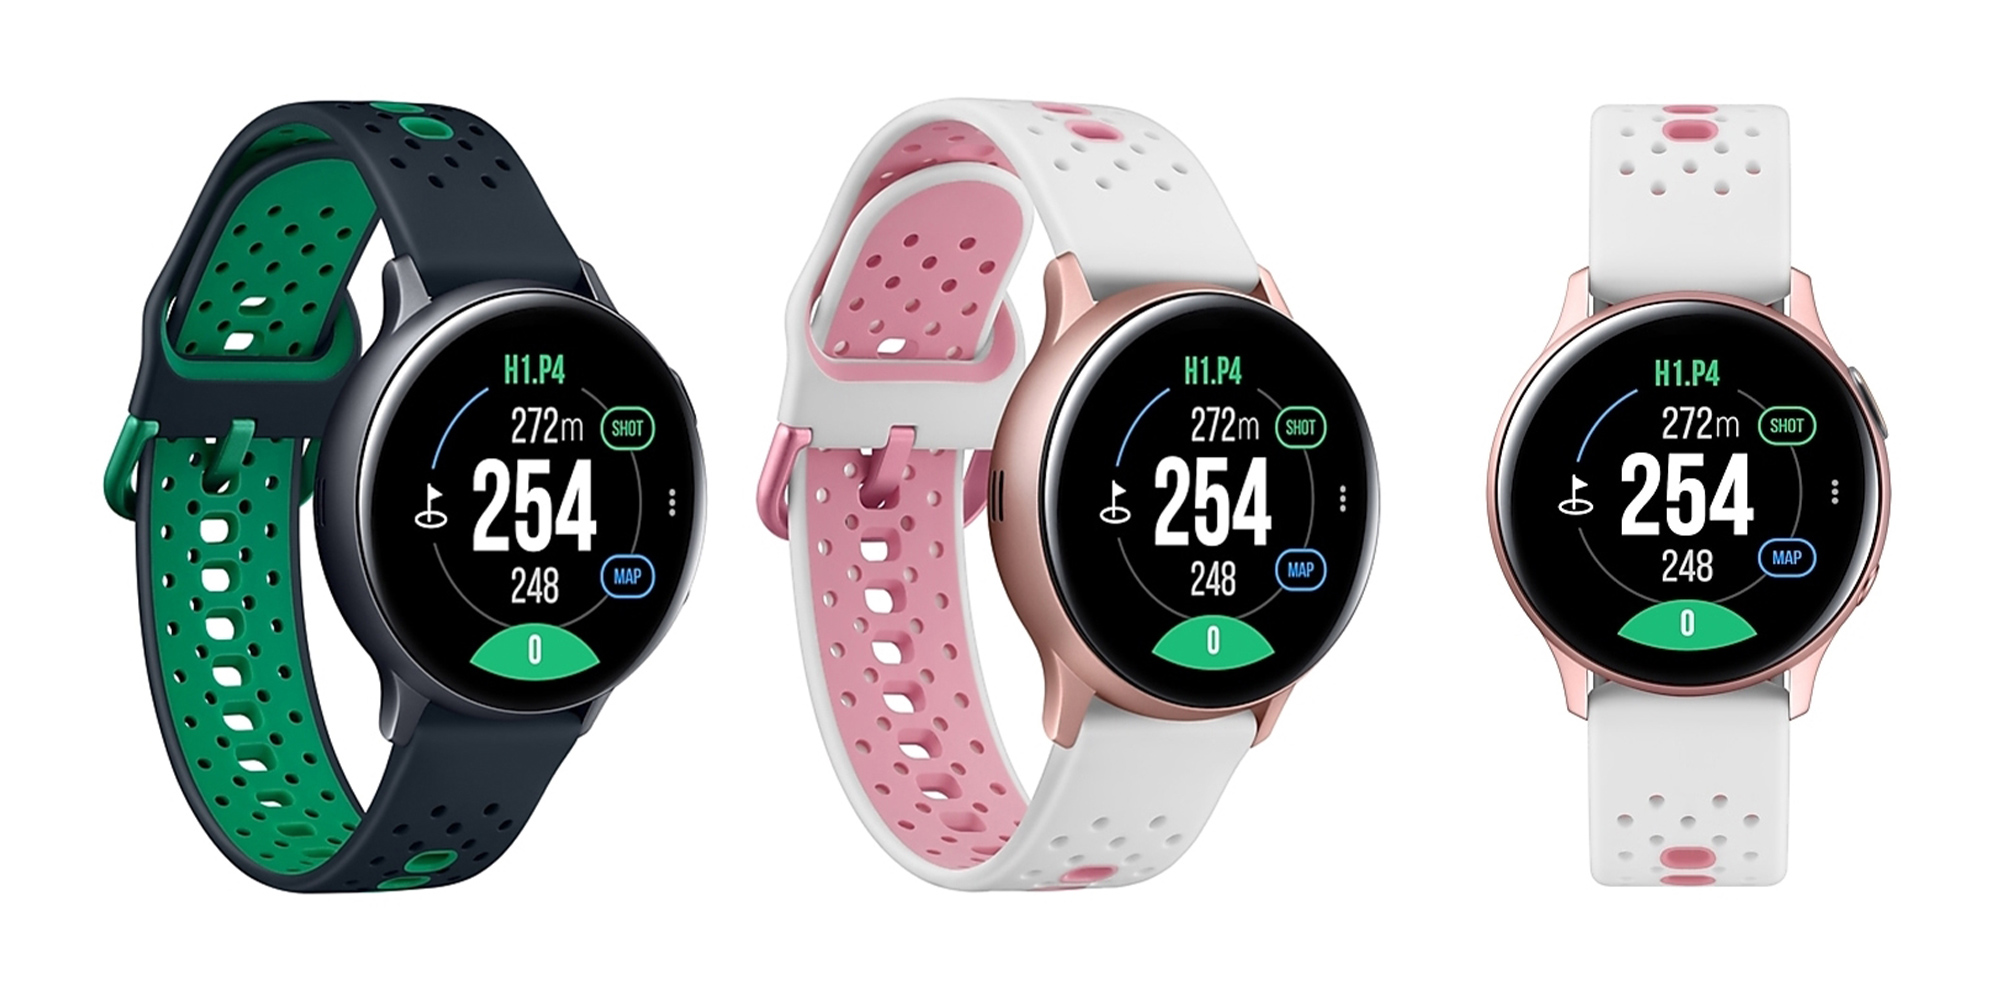 Samsung launches Galaxy Watch Active2 Golf Edition, LTE Aluminum in Korea - 9to5Google